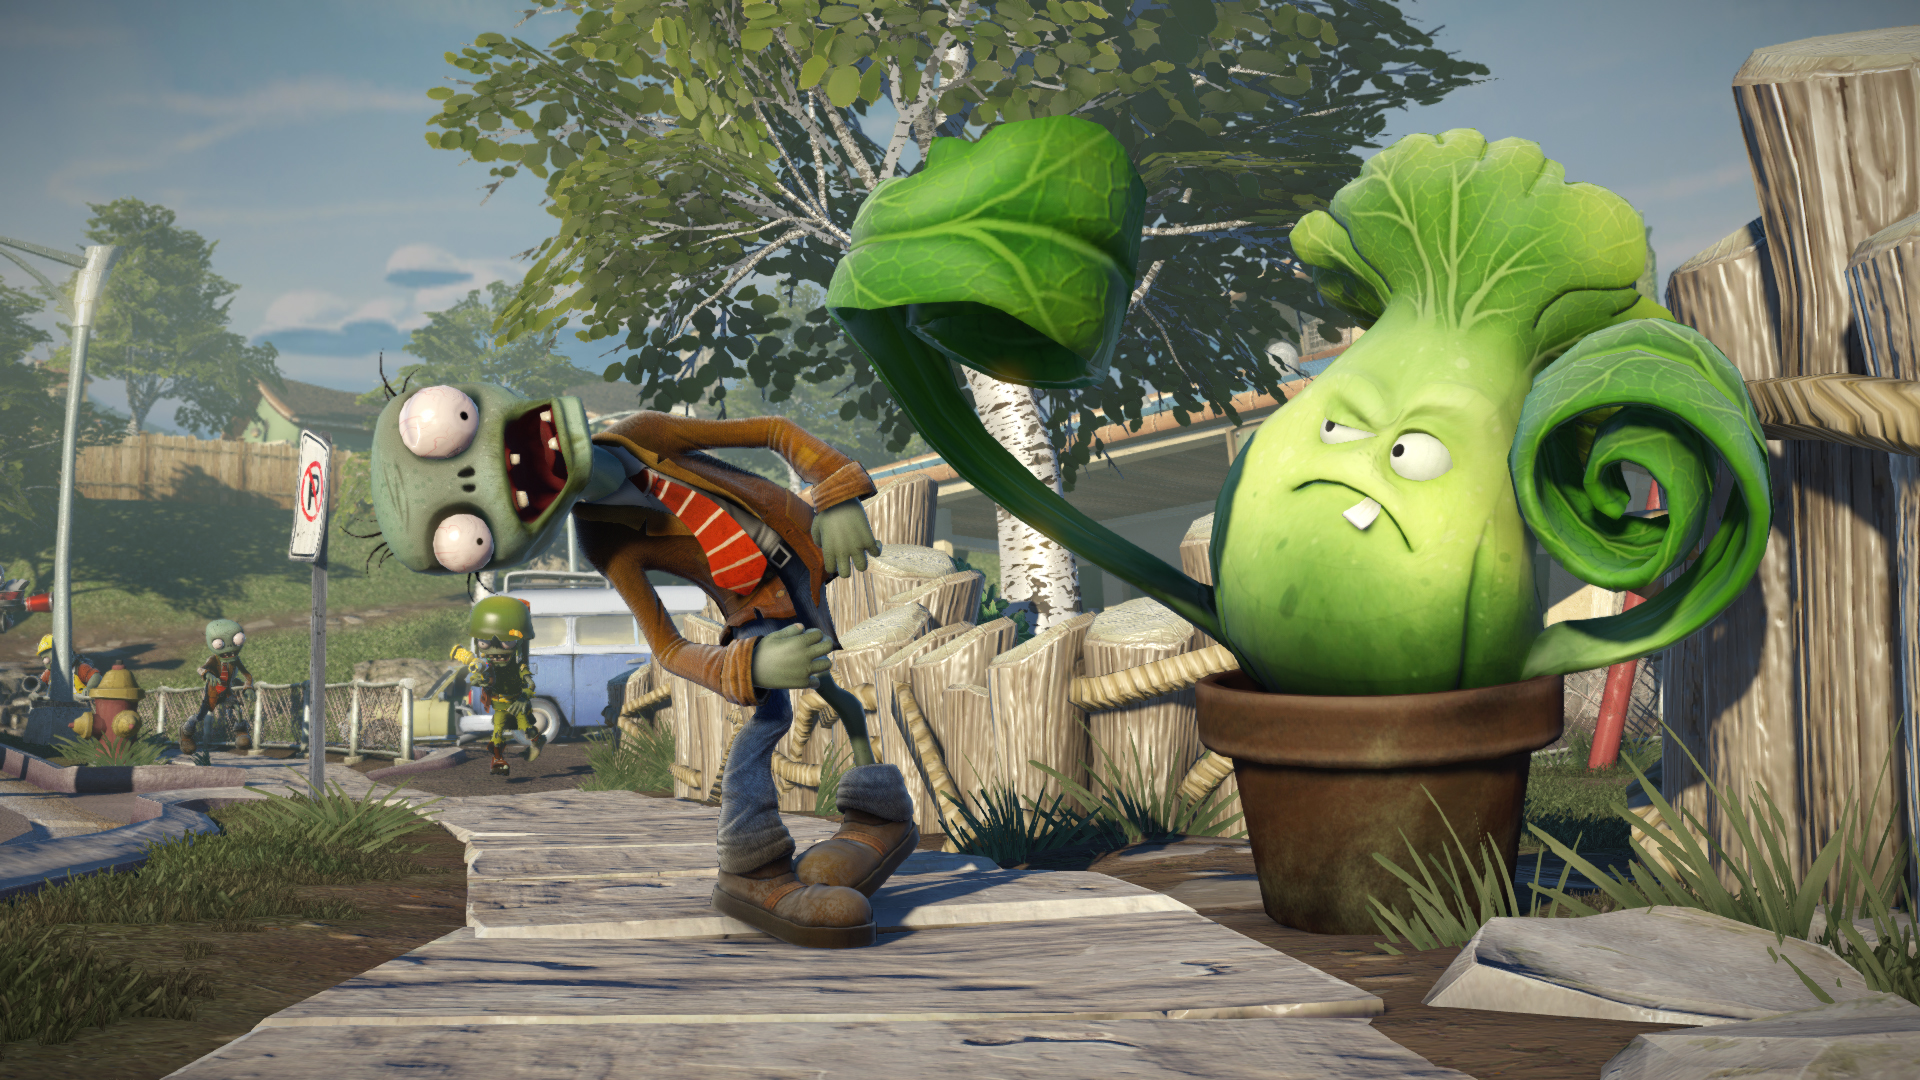 Plants vs zombies garden warfare review smashpad - Plants vs zombies garden warfare 2 review ...